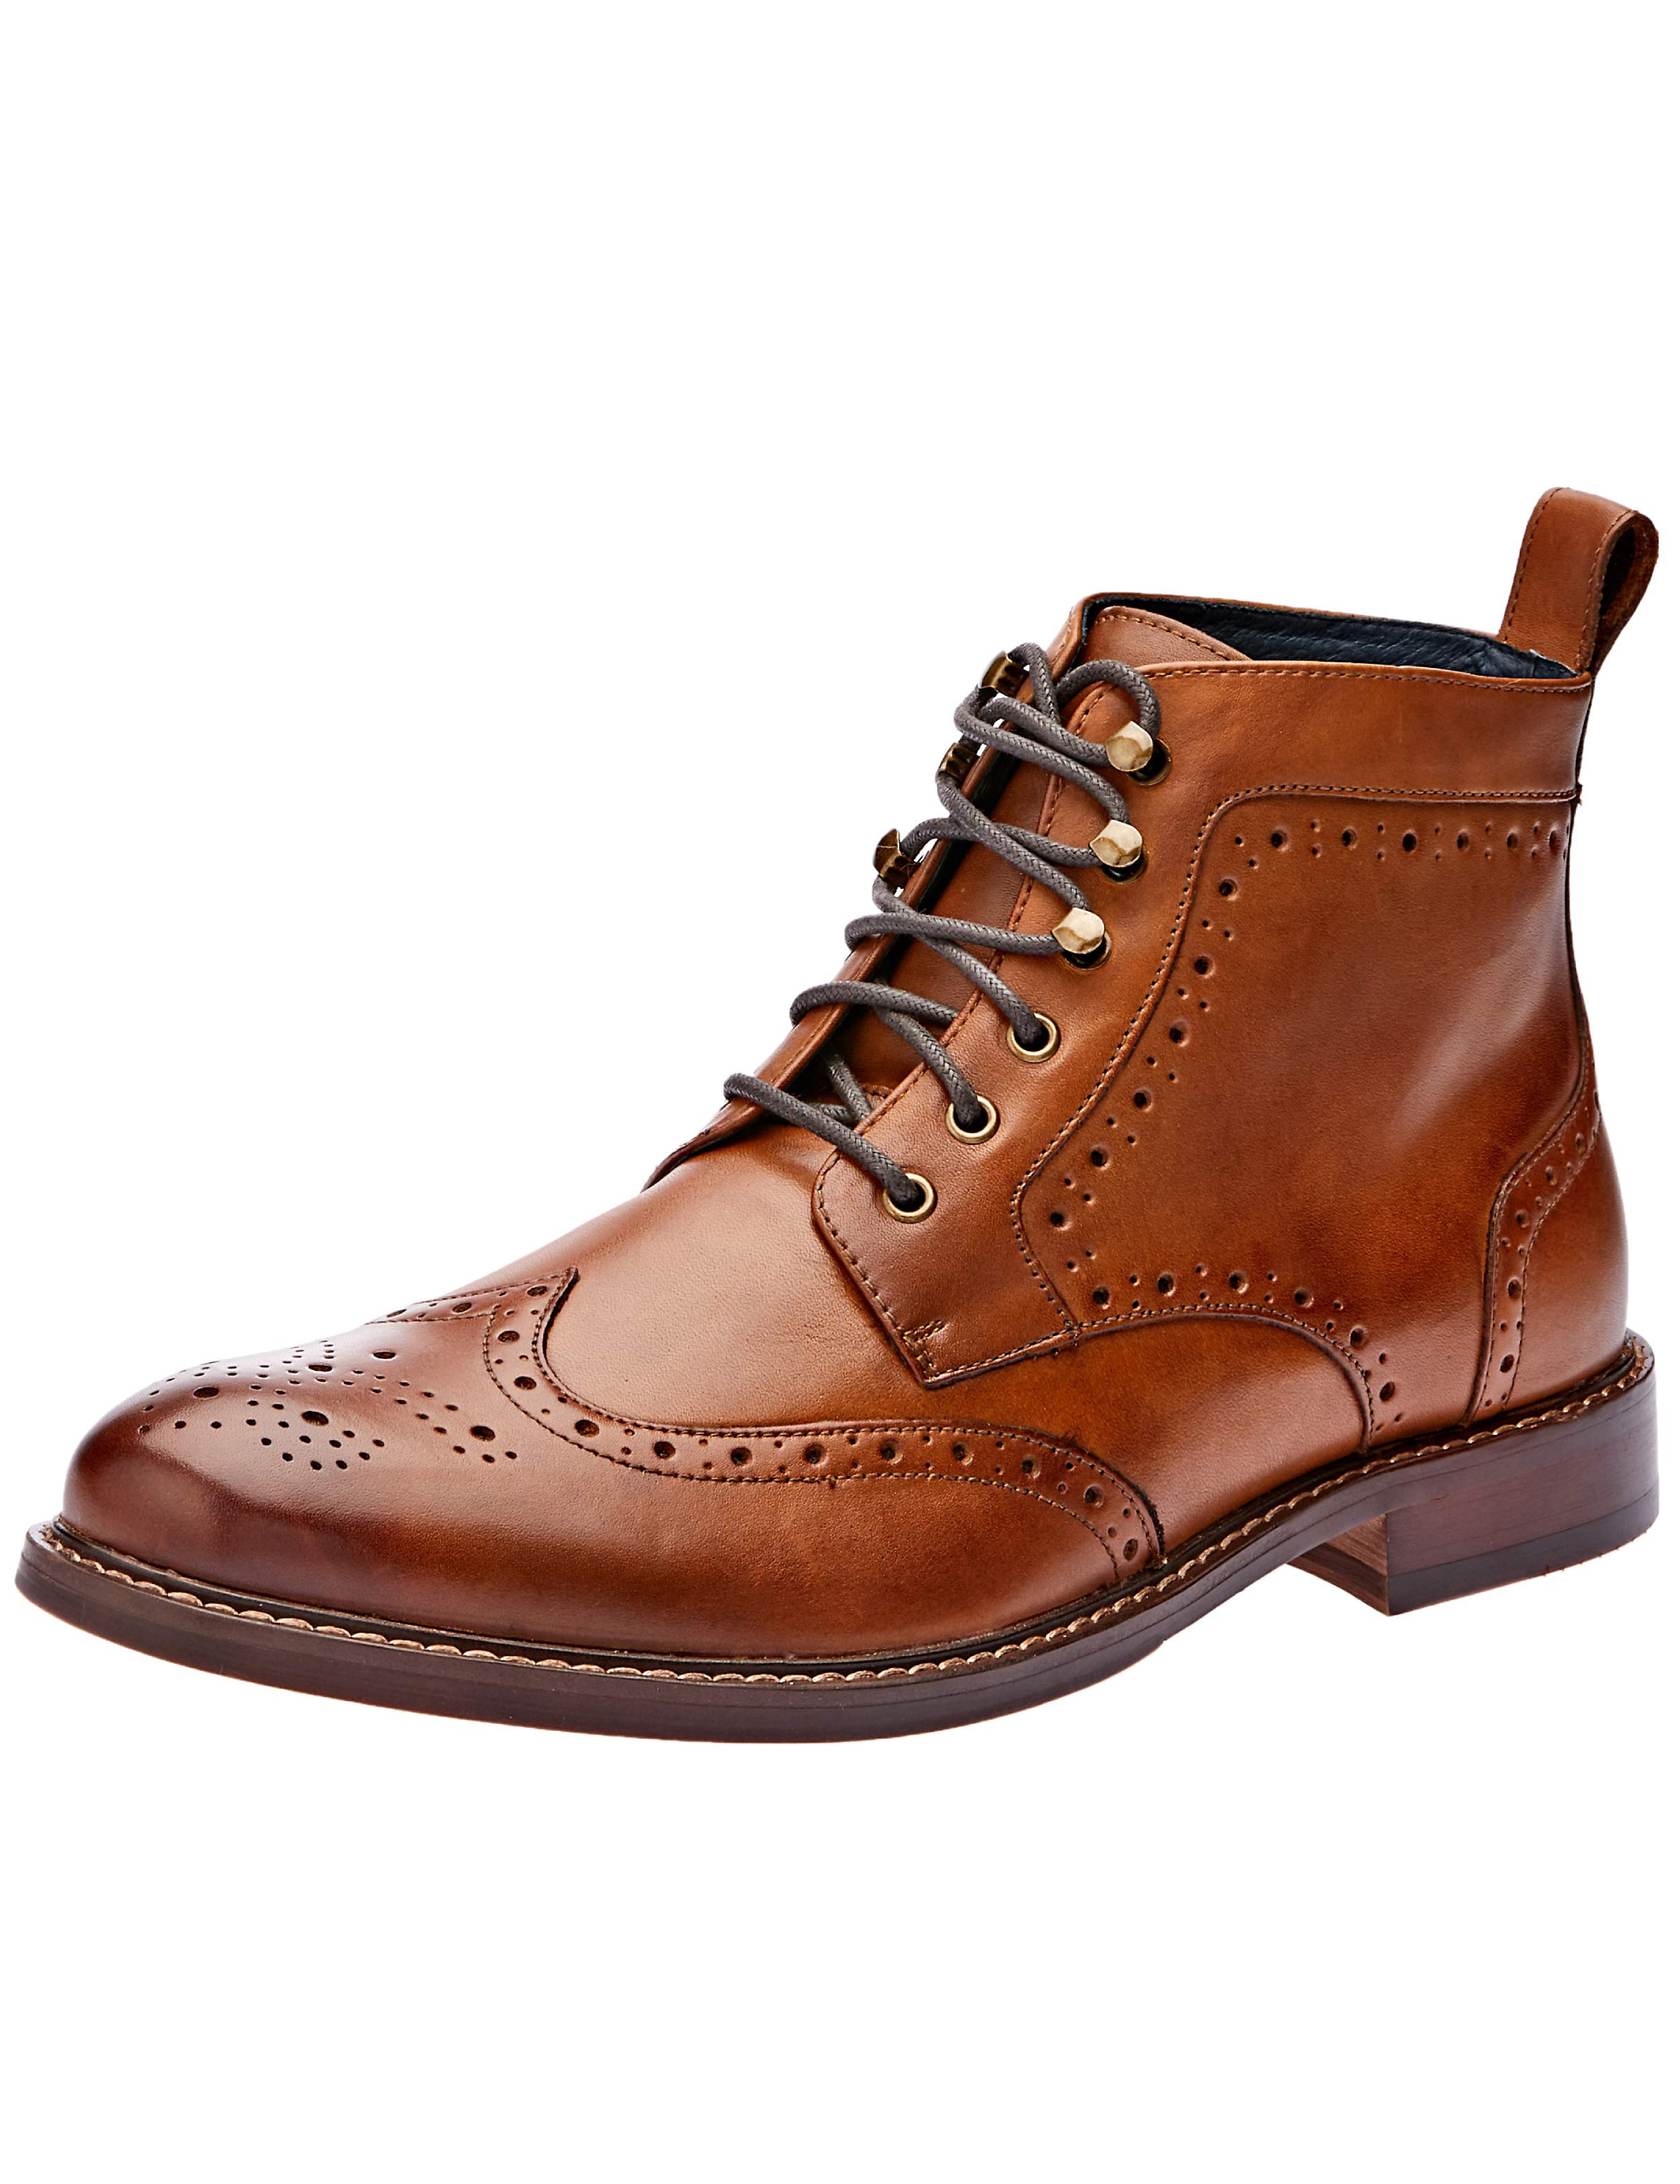 ulius Marlow Men's Cause Boots